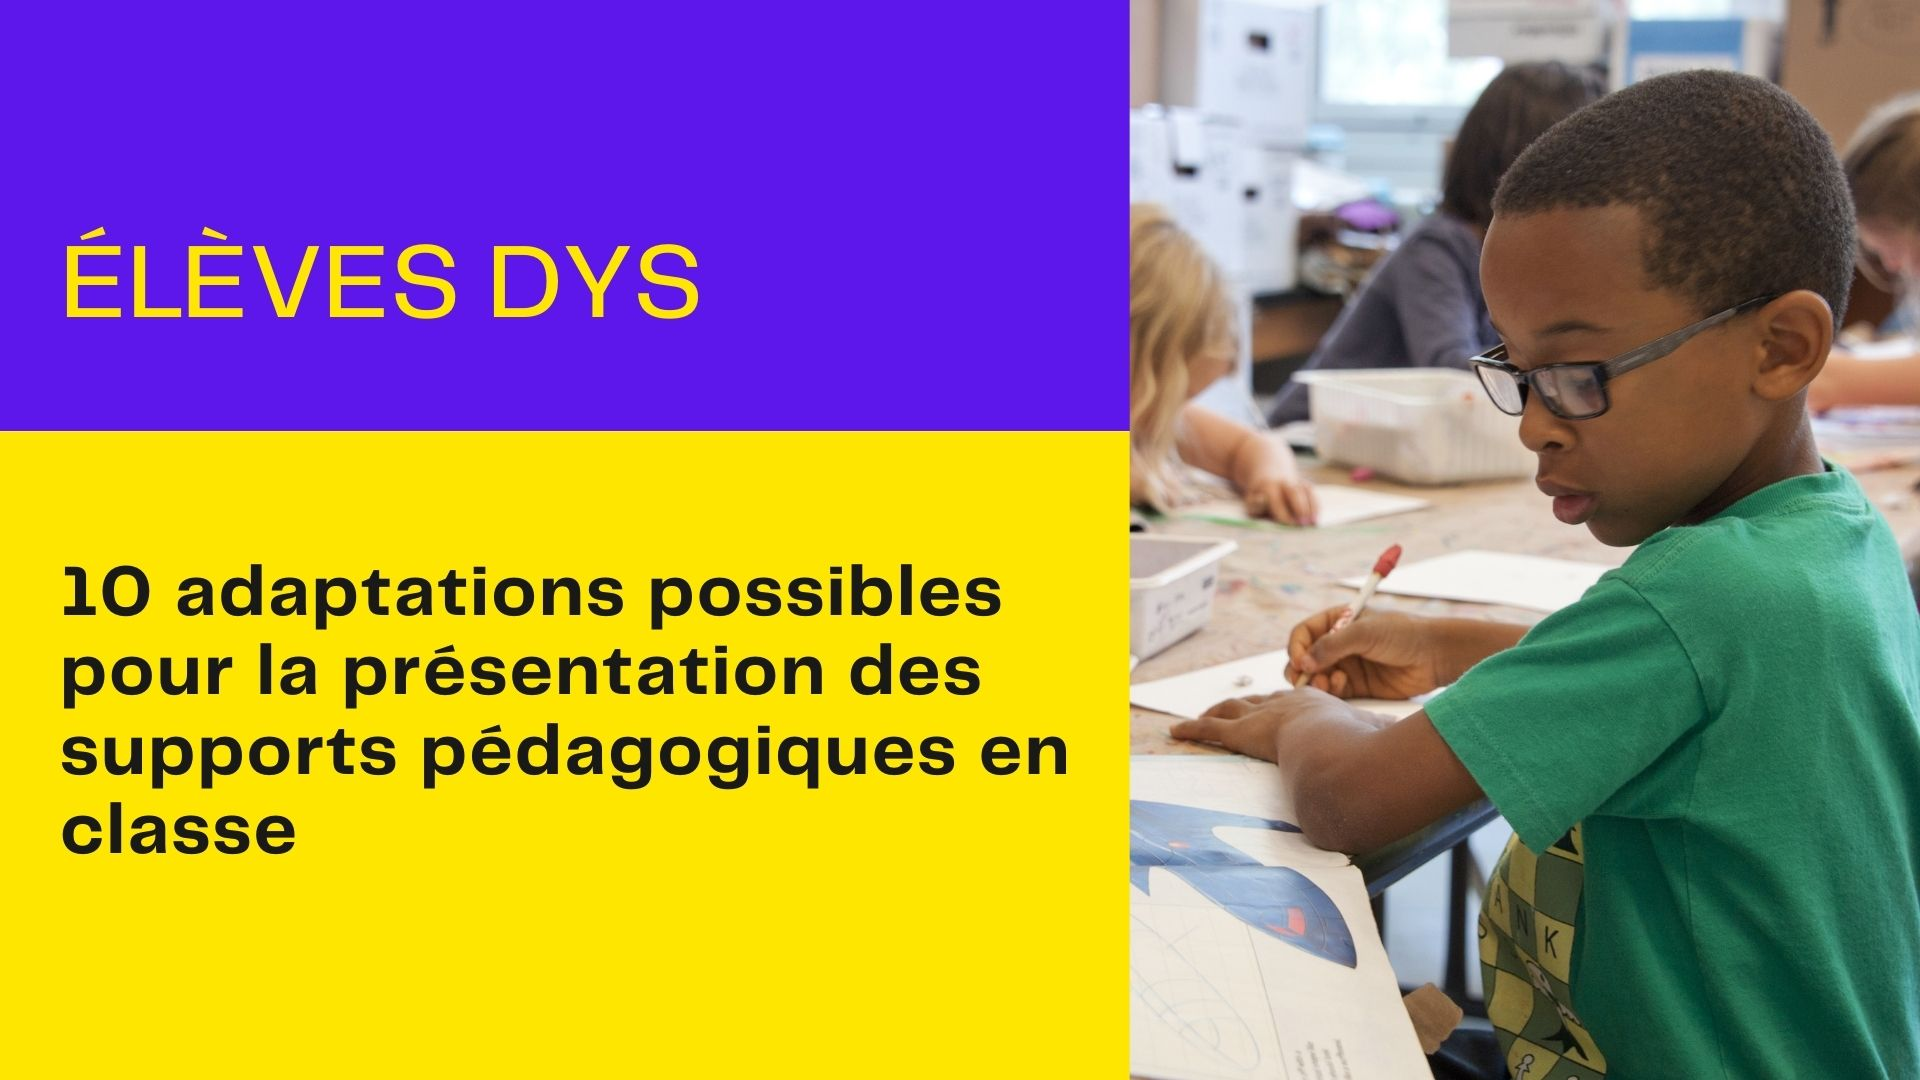 adaptations-supports-pedagogiques-eleves-dys